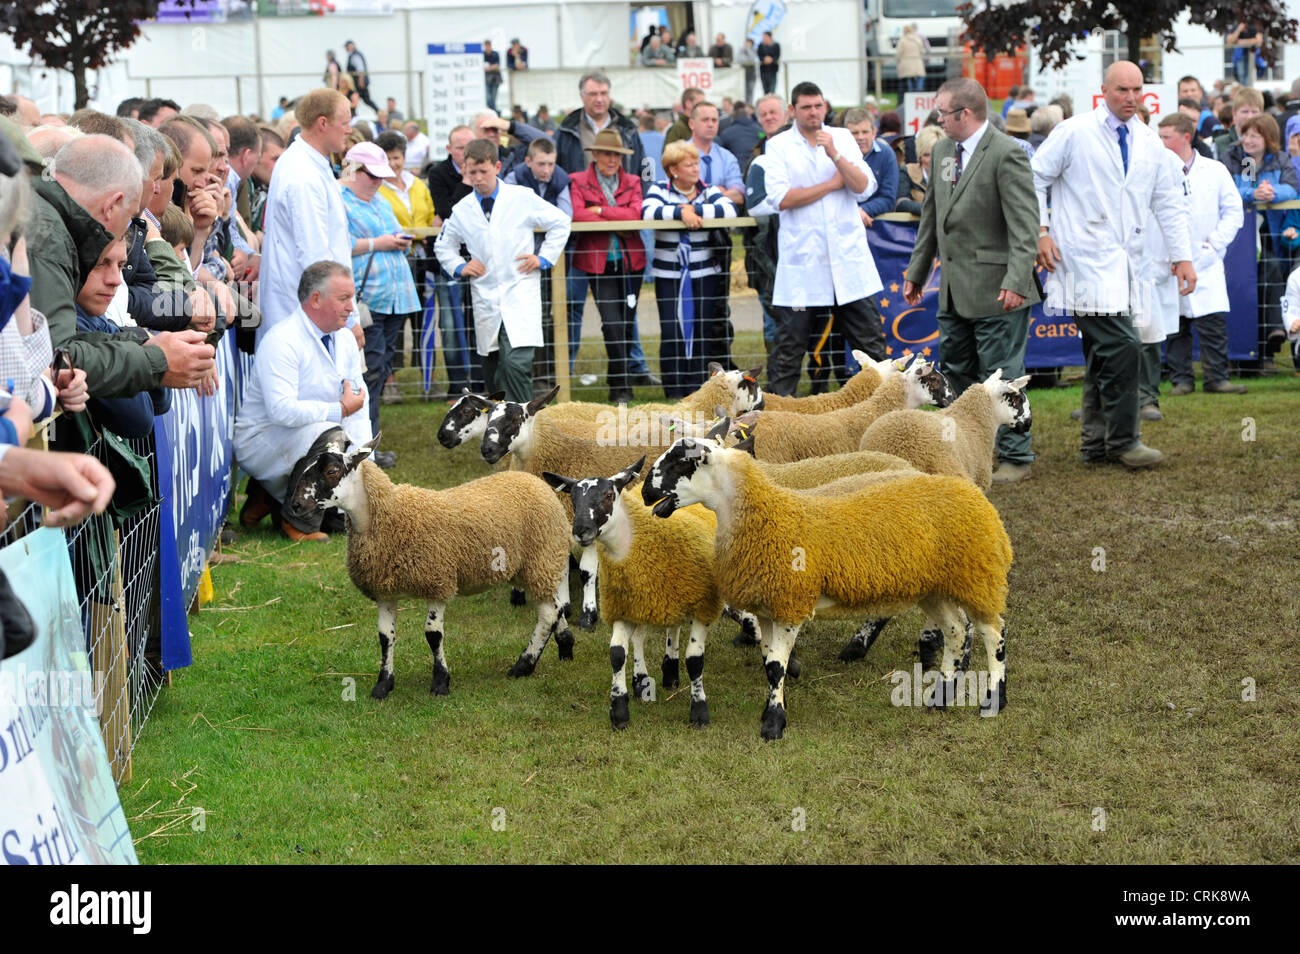 Judging the Scottish Mule classes at the Royal Highland show with a crowd of onlookers. - Stock Image